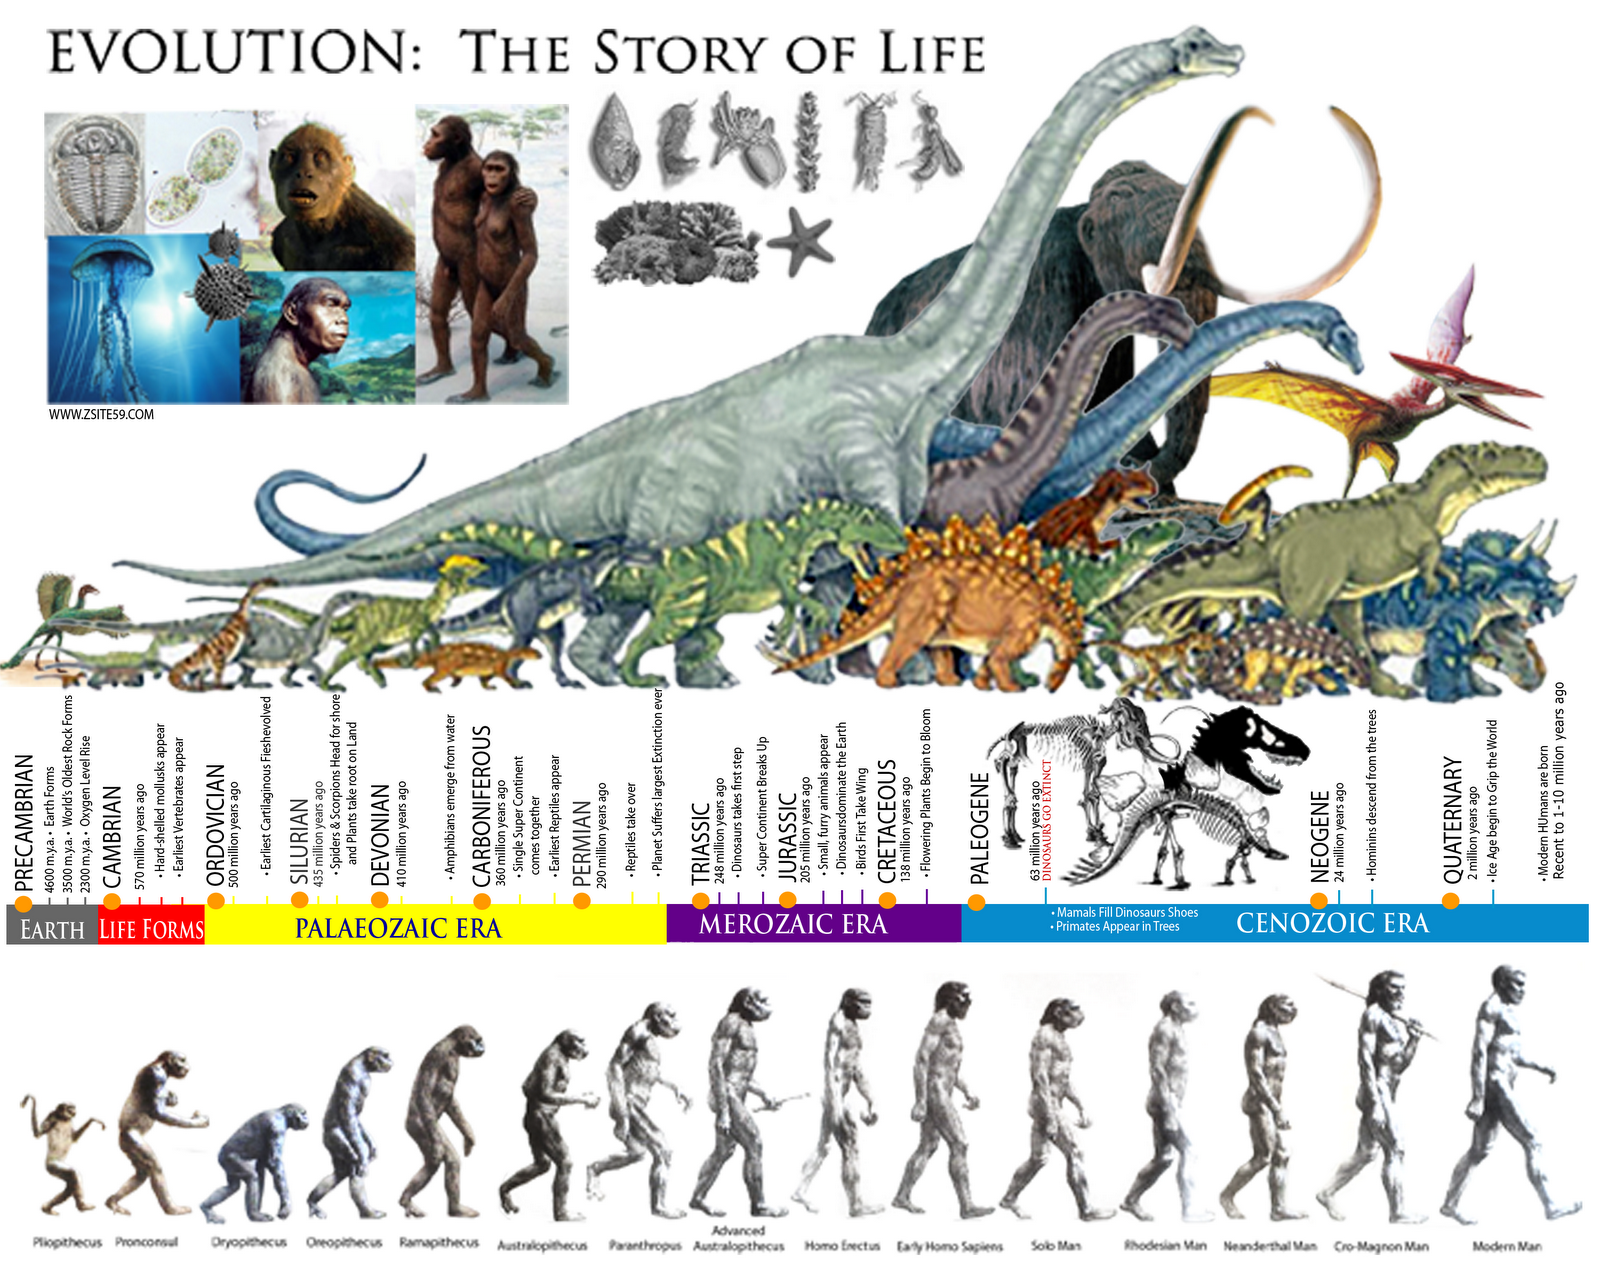 evolution of science Not everyone who accepted an ancient earth necessarily accepted biological evolution by the early 19th century, the professional scientists and leisurely gentlemen who dabbled in geology or comparative anatomy entertained a variety of explanations for humanity's predecessors evolution was one explanation, but many.